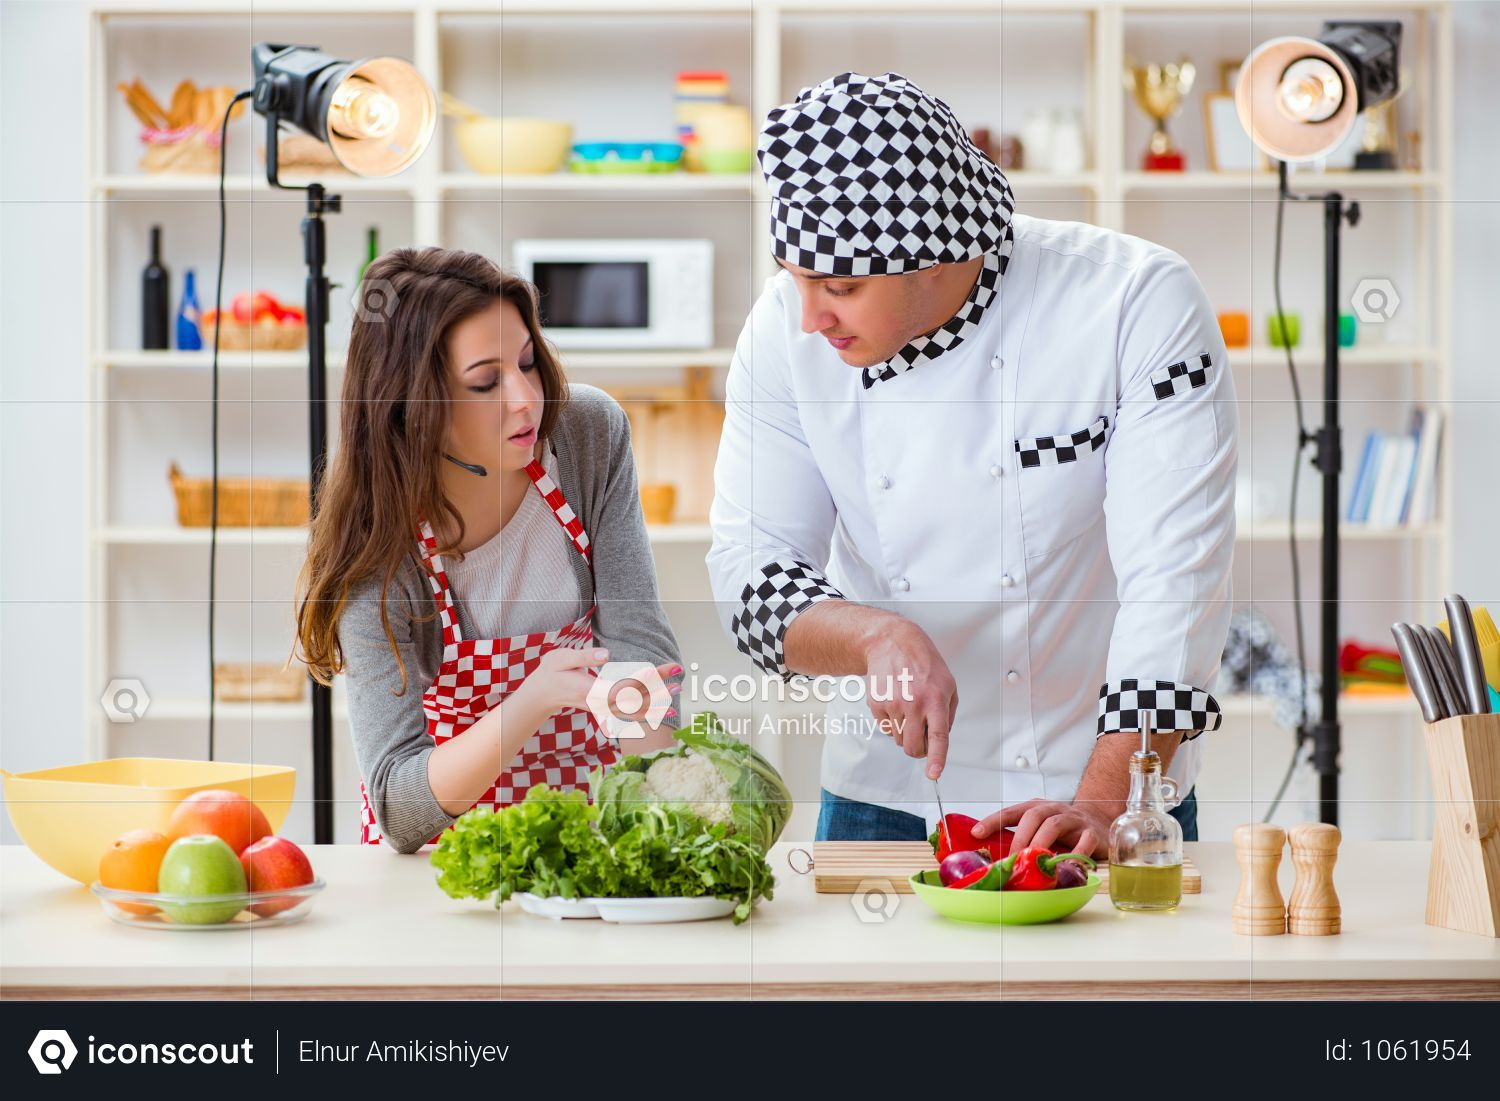 Premium Food Cooking Tv Show In The Studio Photo Download In Png Jpg Format Cooking Tv Cooking Recipes Cooking Icon